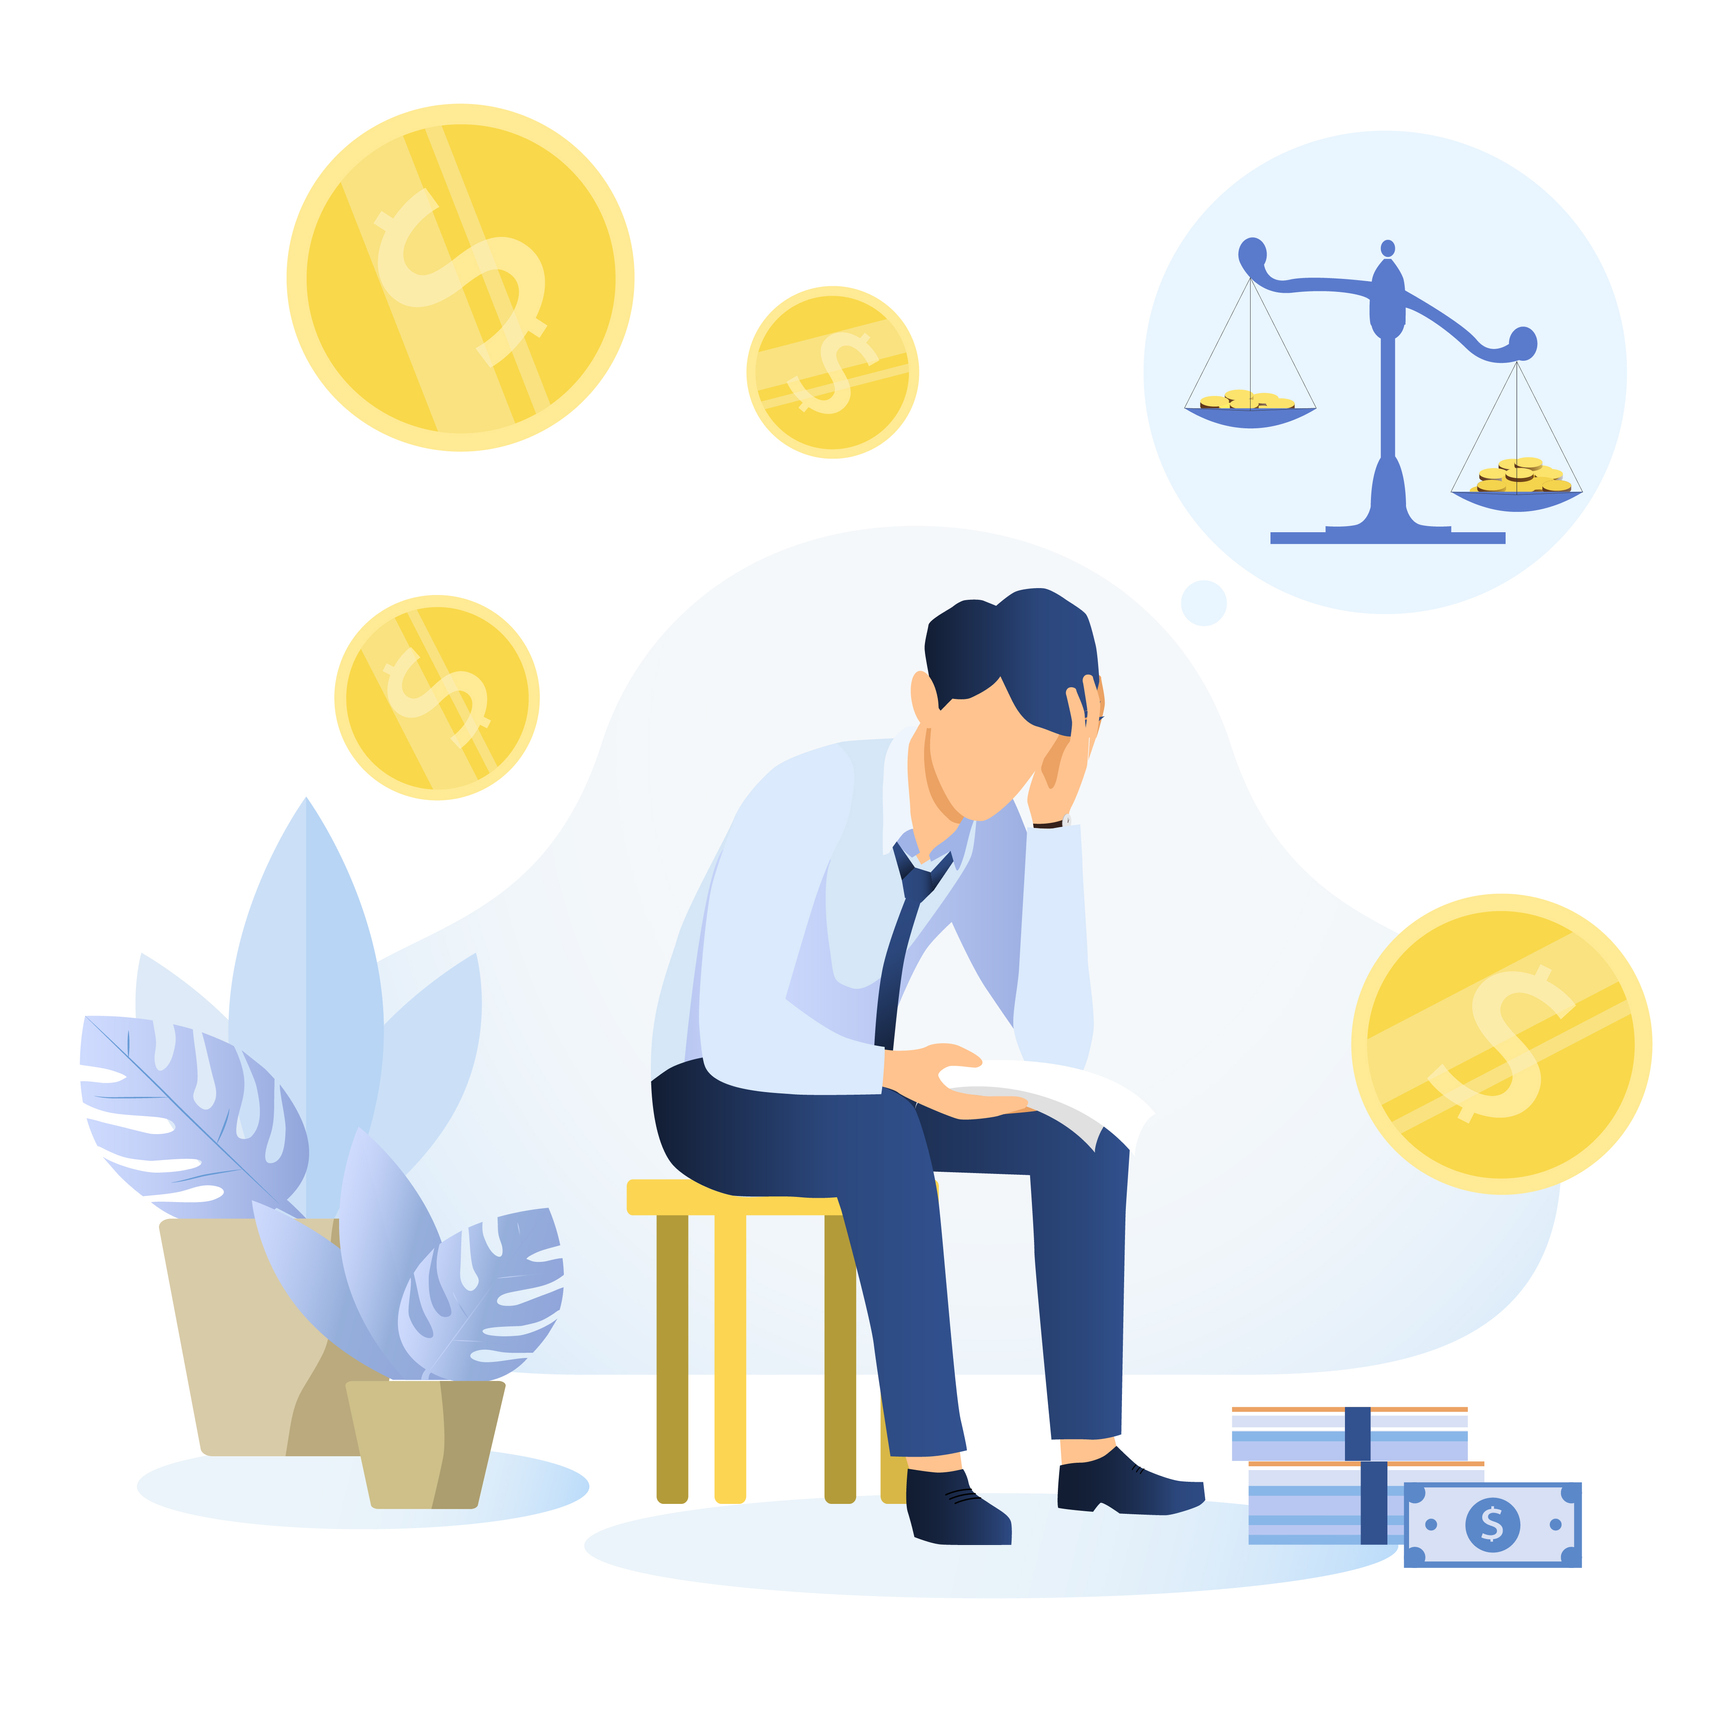 Depressed young man sitting on a chair reading a document and thinking about finding money for paying bills. Financial problems and bankruptcy concept. Flat vector illustration. Image credit: Rudzhan Nagiev, iStock